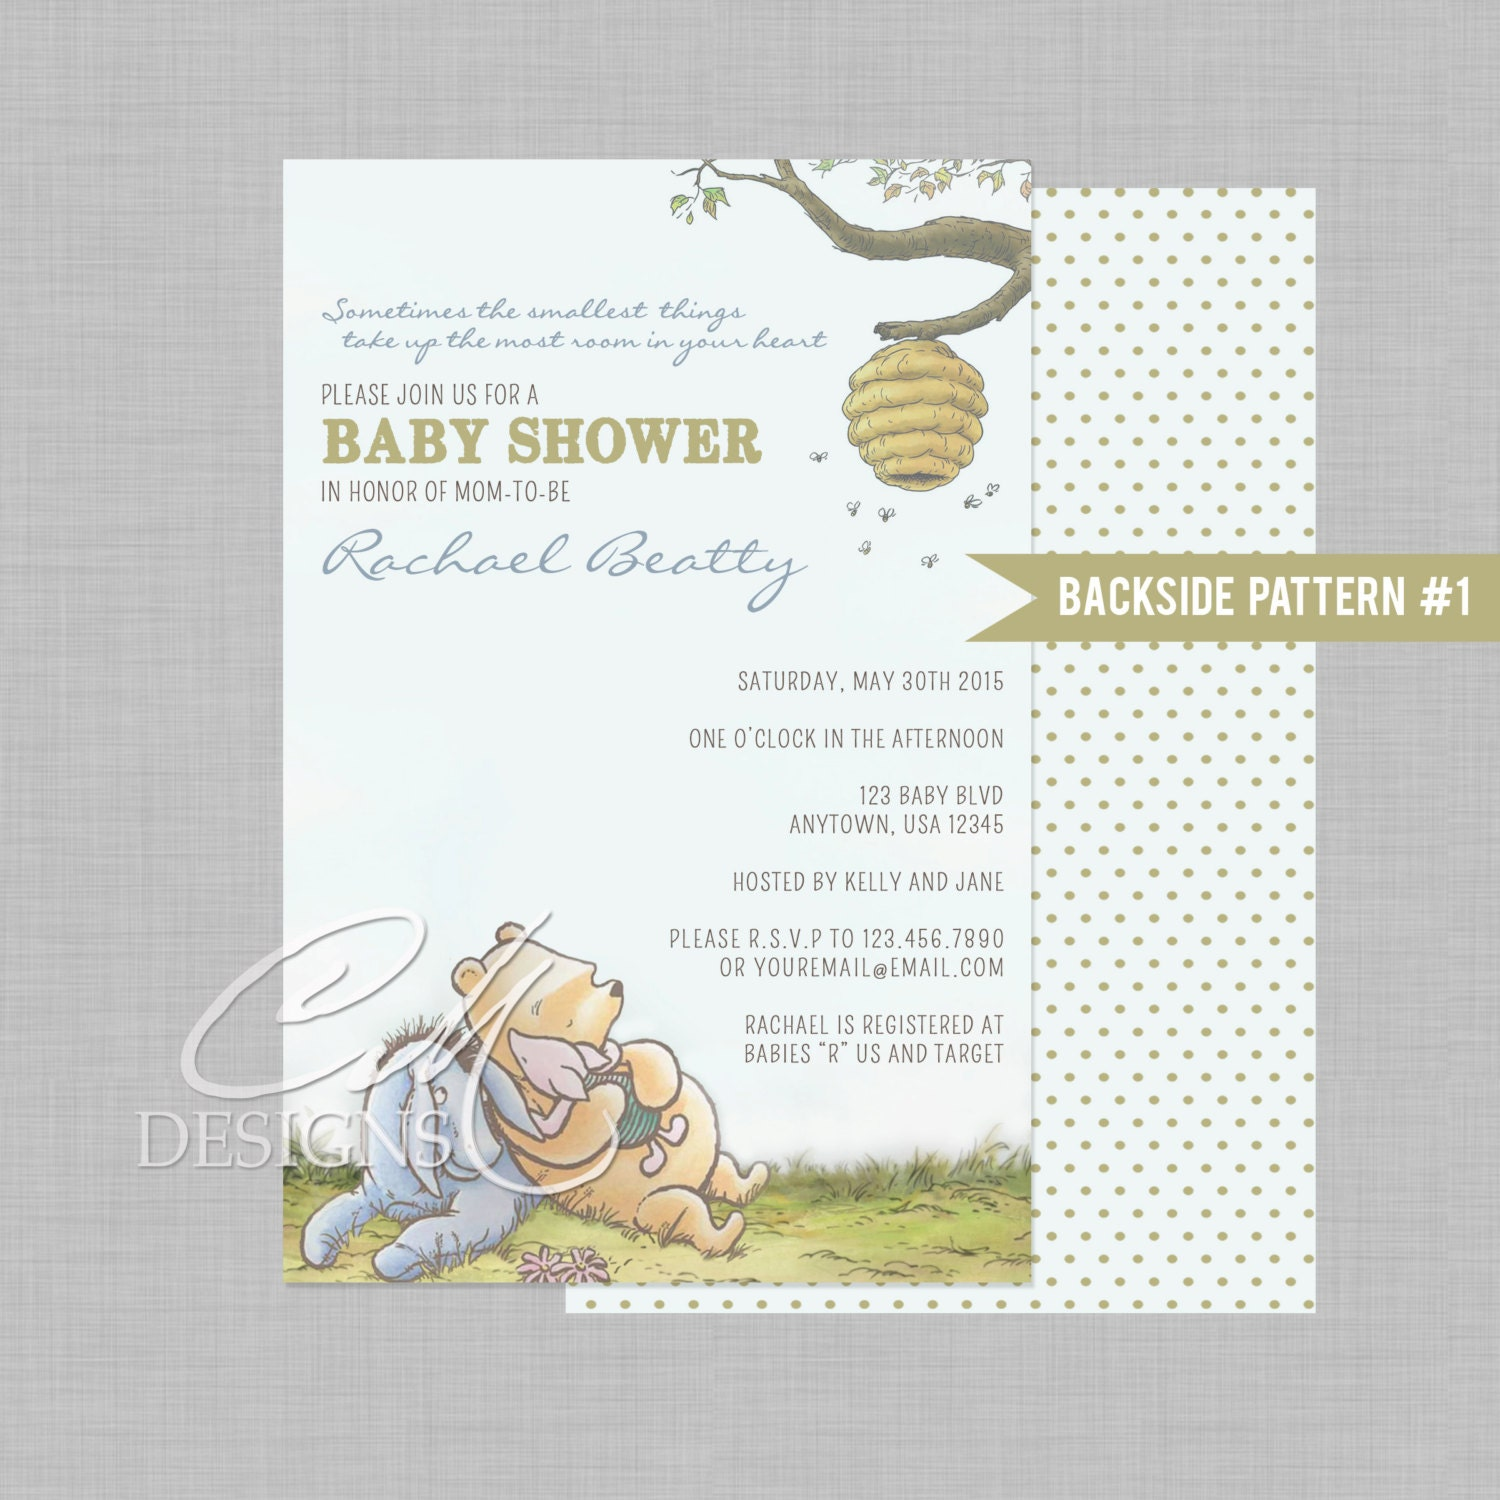 classic winnie the pooh baby shower invite by designsbycassiecm